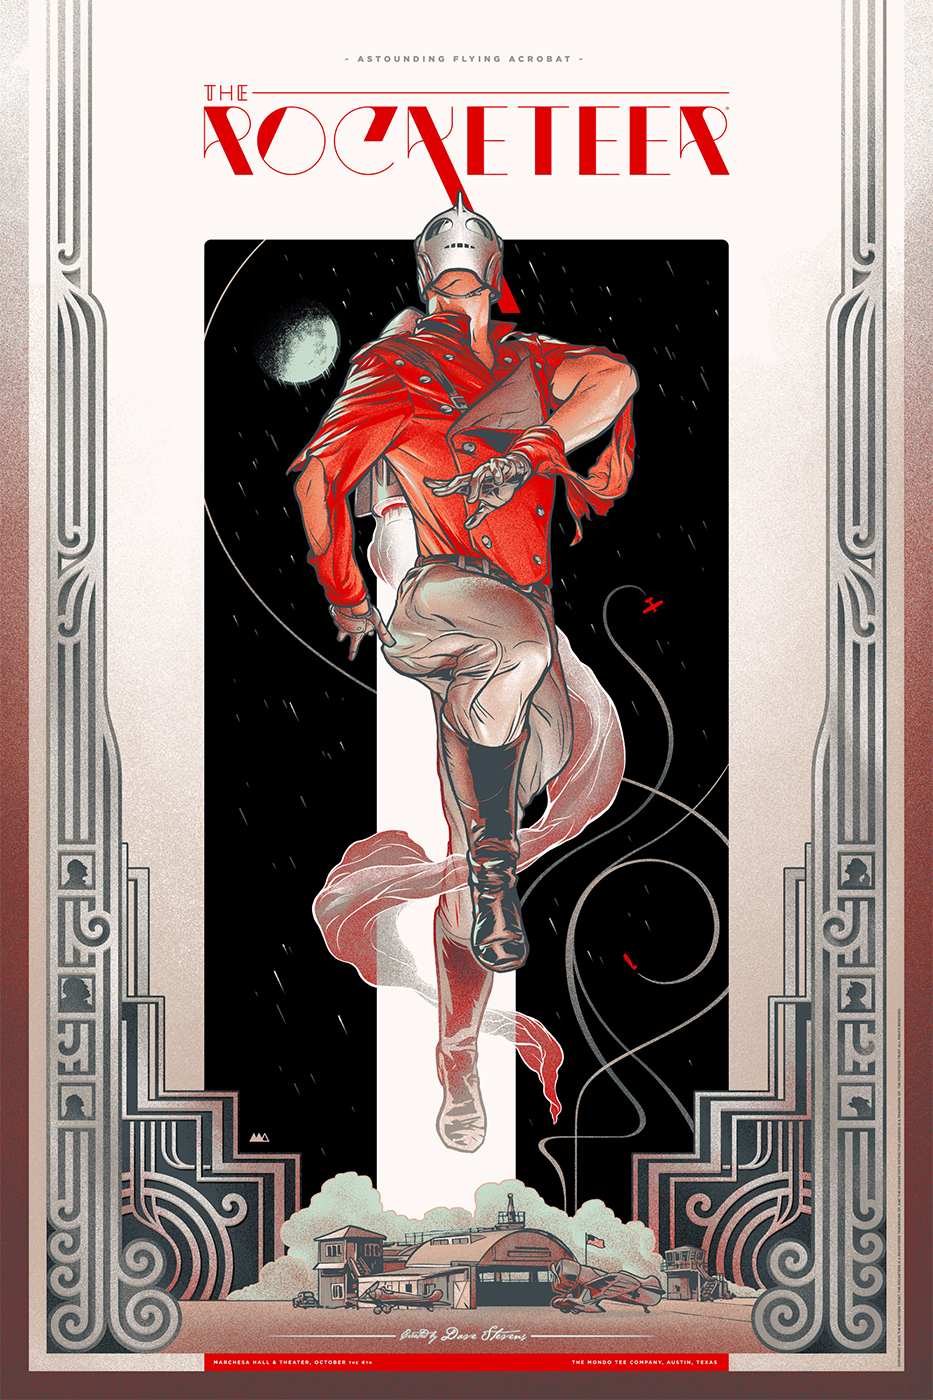 Beautiful Rocketeer Poster Art By Martin Ansin Geektyrant